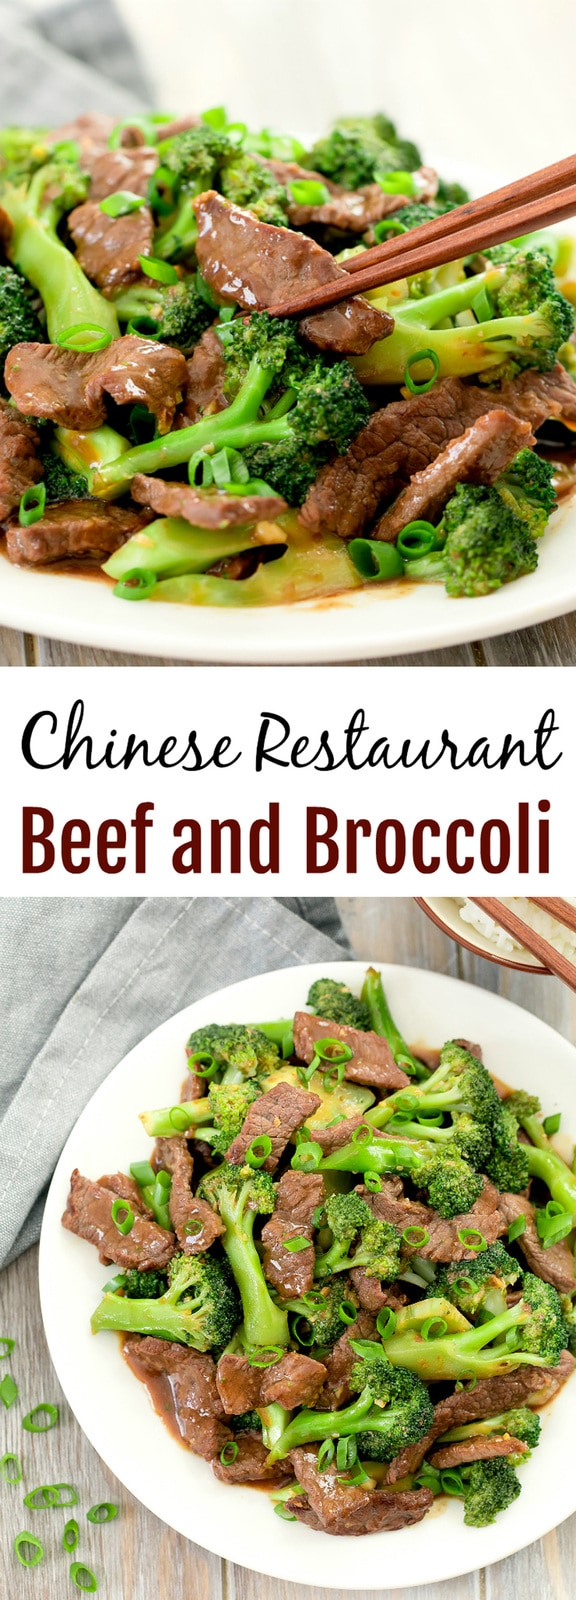 Beef and Broccoli. This popular Chinese dish can easily be made home. Learn how to make restaurant style beef and broccoli stir fry that is better than take-out.